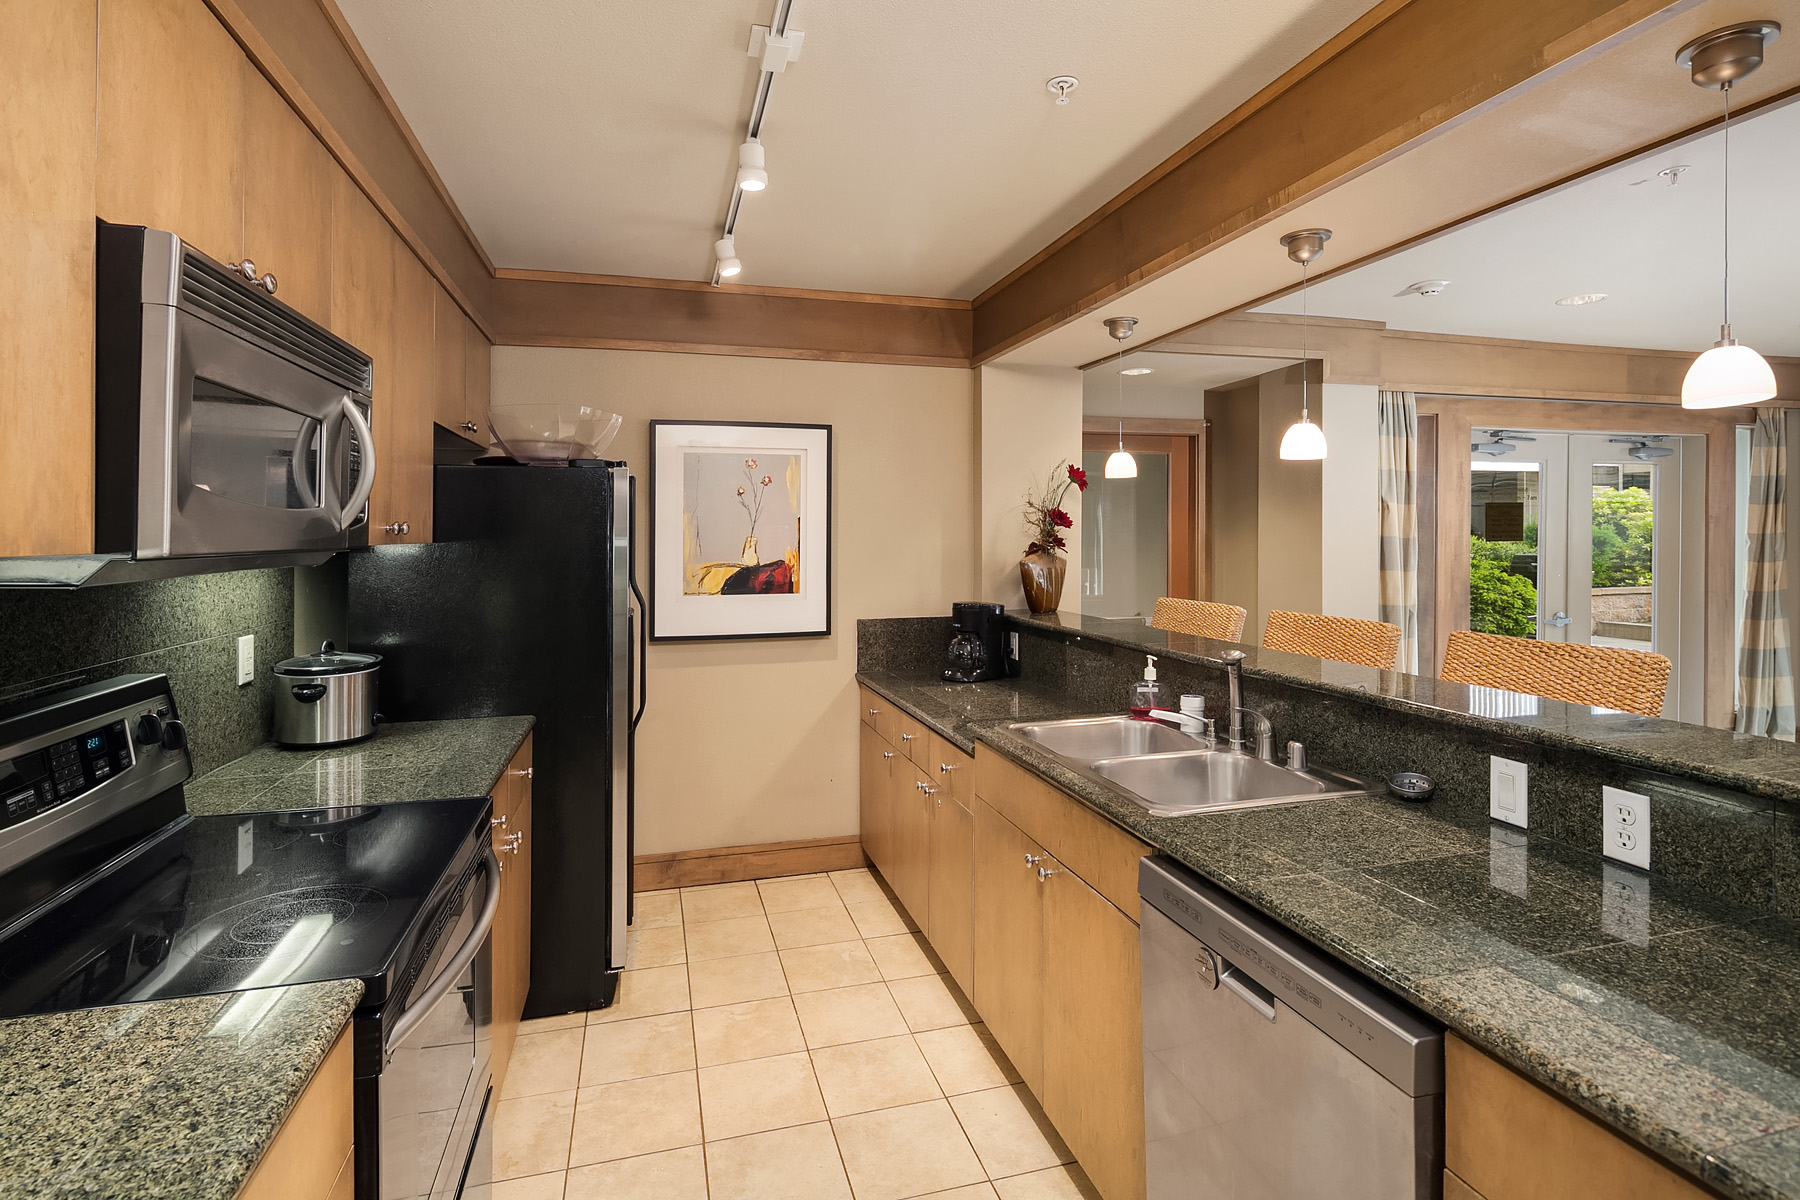 Additional photo for property listing at Ballard Place 1545 NW 57th St #319 Seattle, Washington 98107 United States